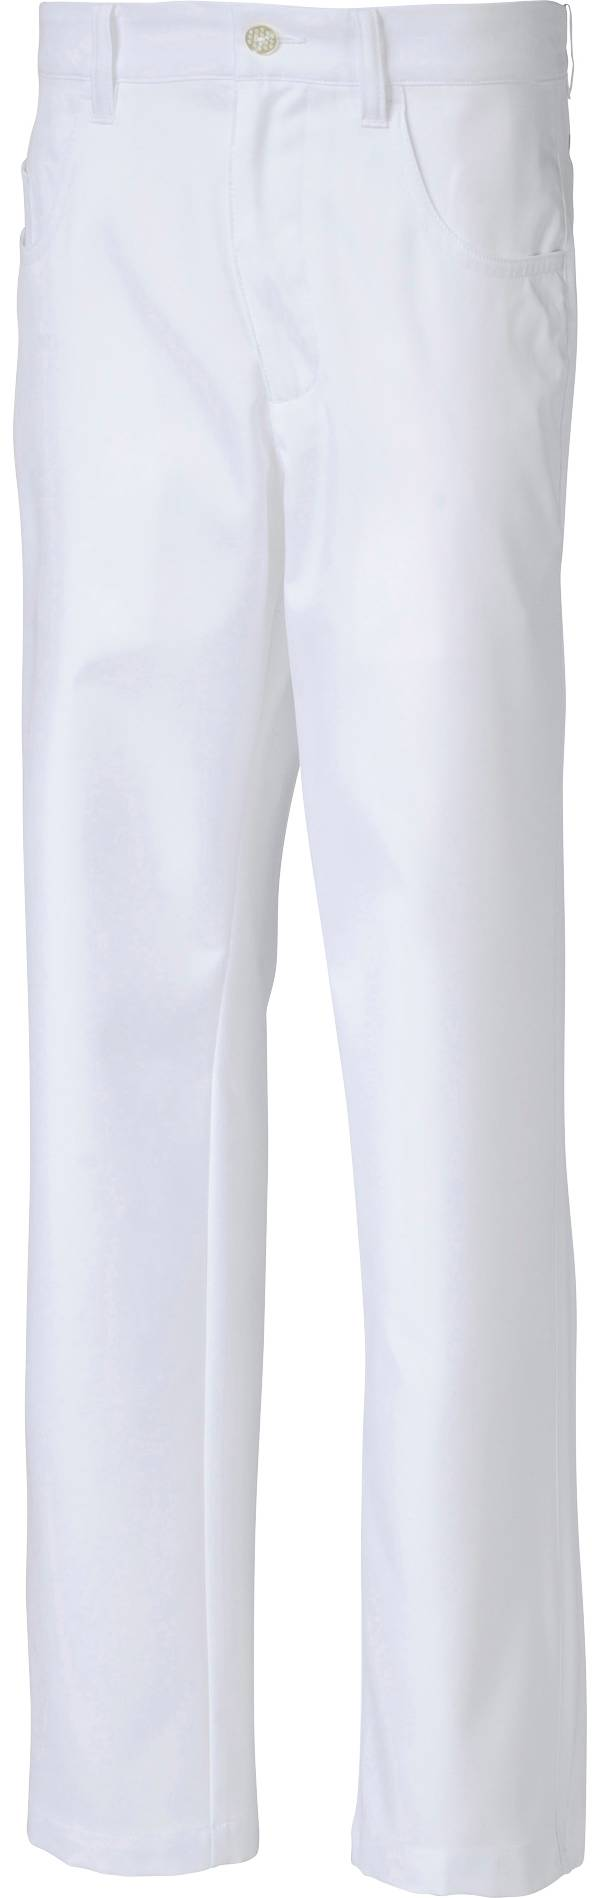 PUMA Boys' 5 Pocket Golf Pants product image